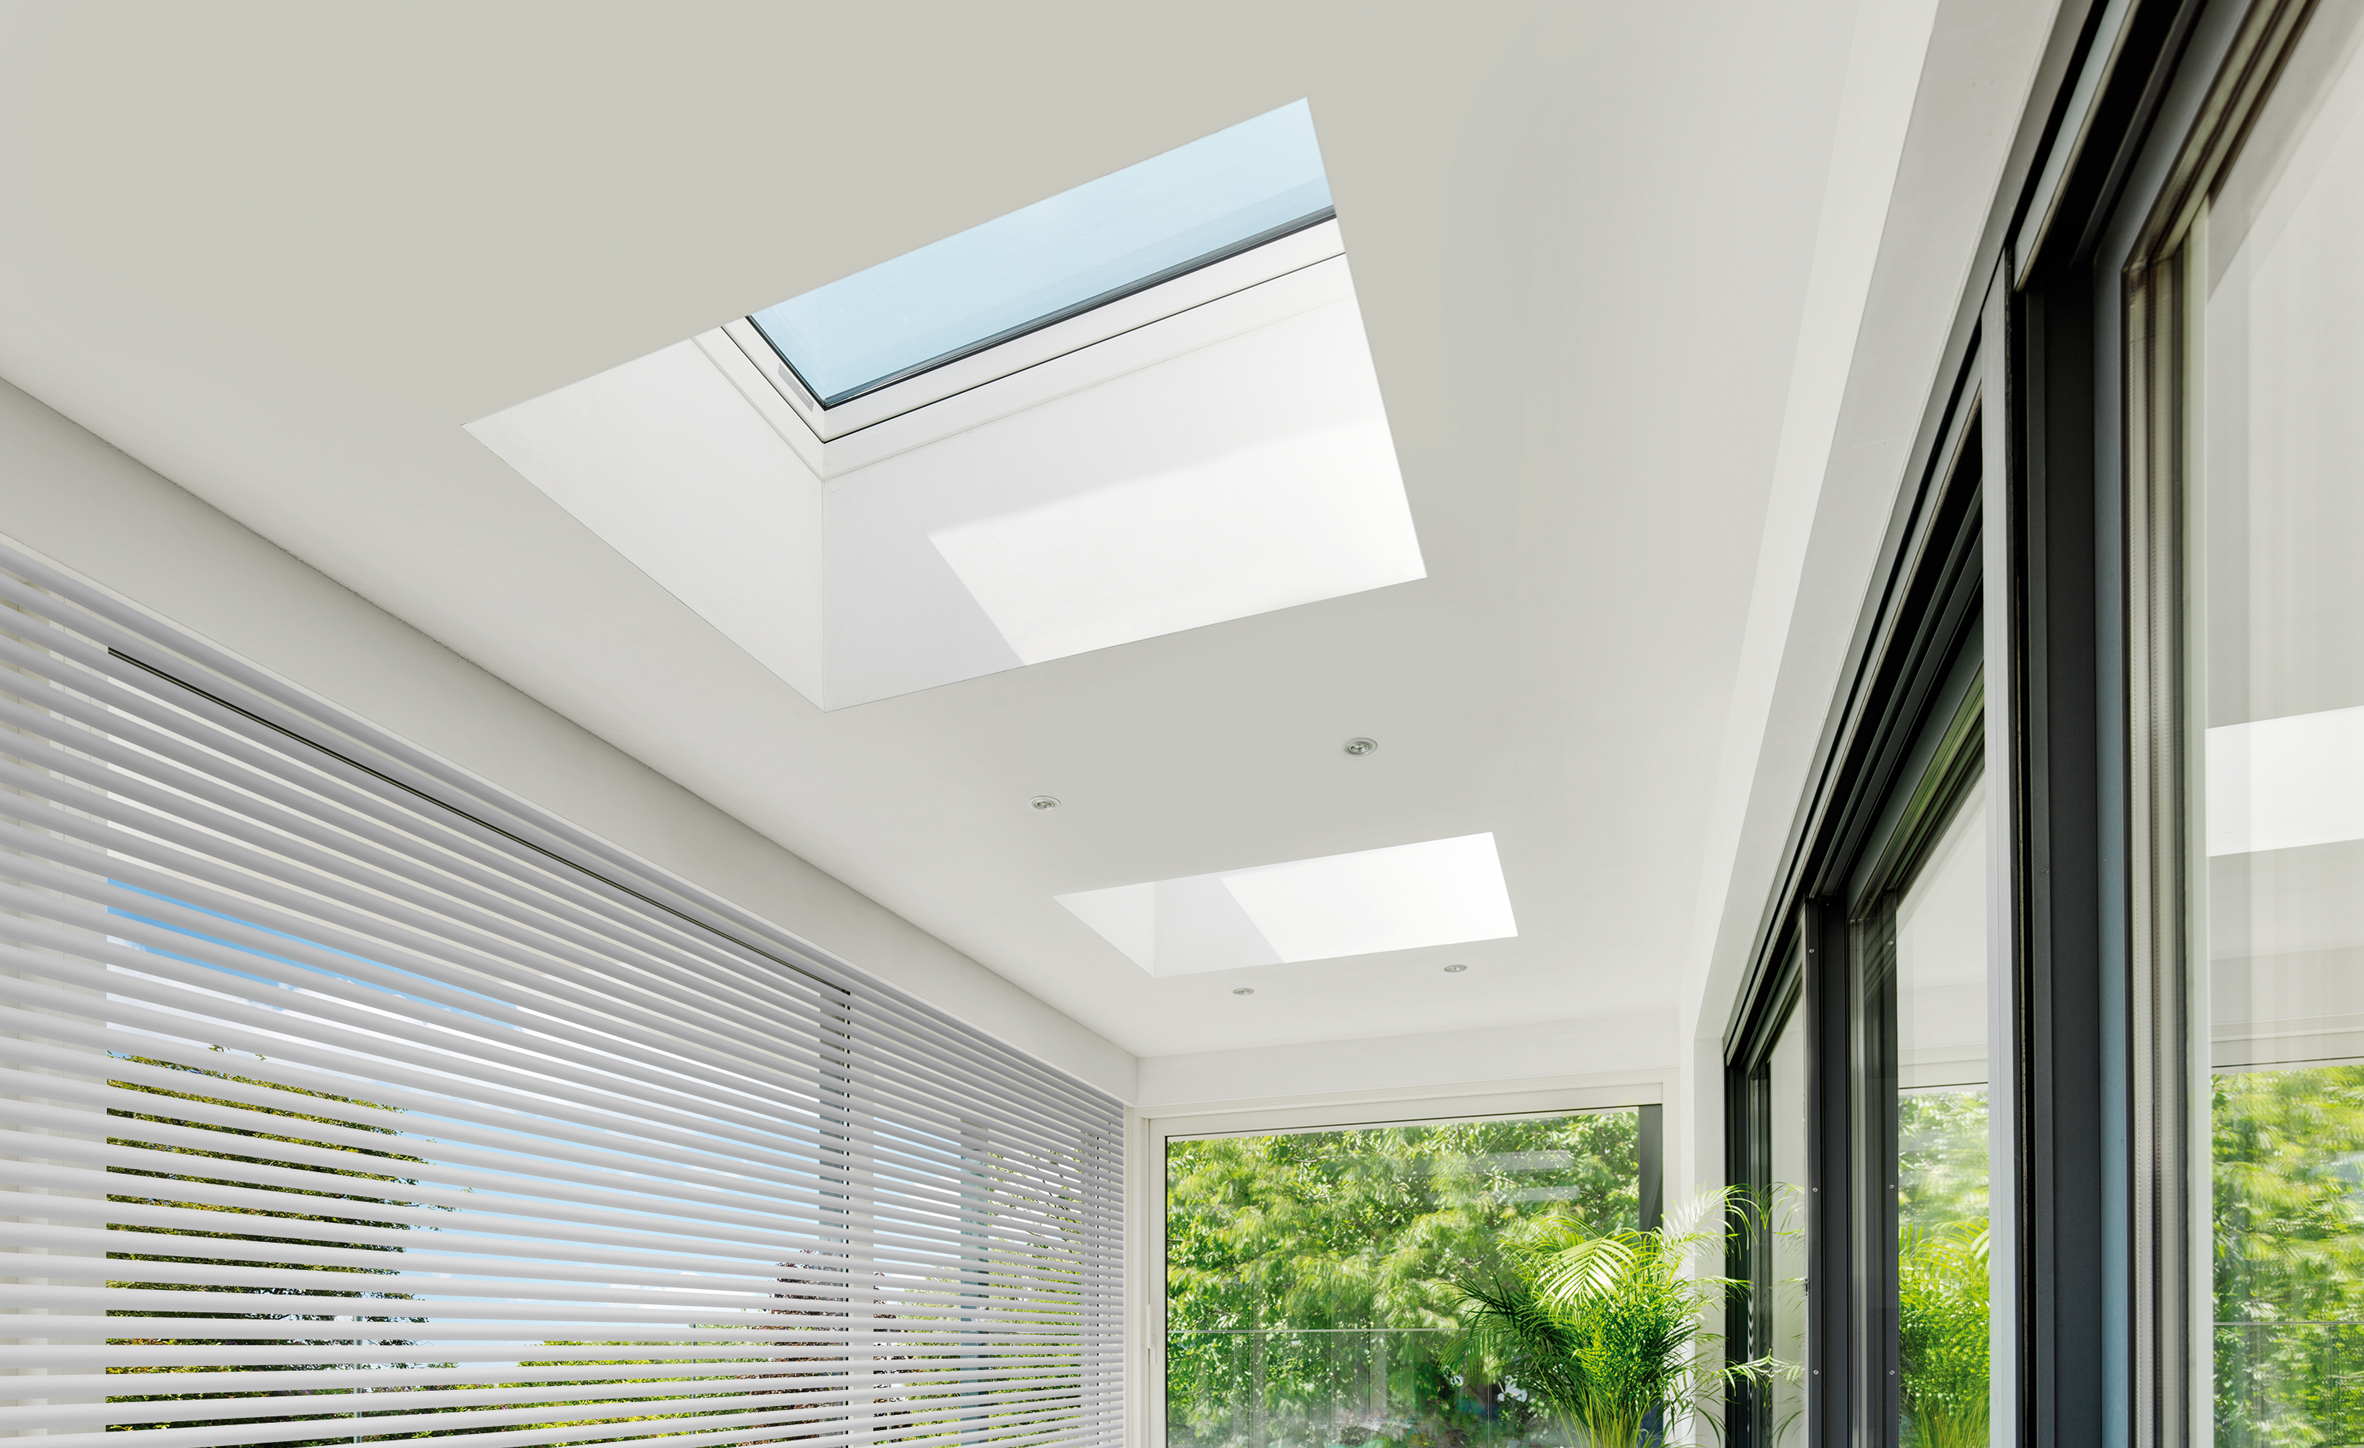 Fakro launches skylights designed especially for flat roofs